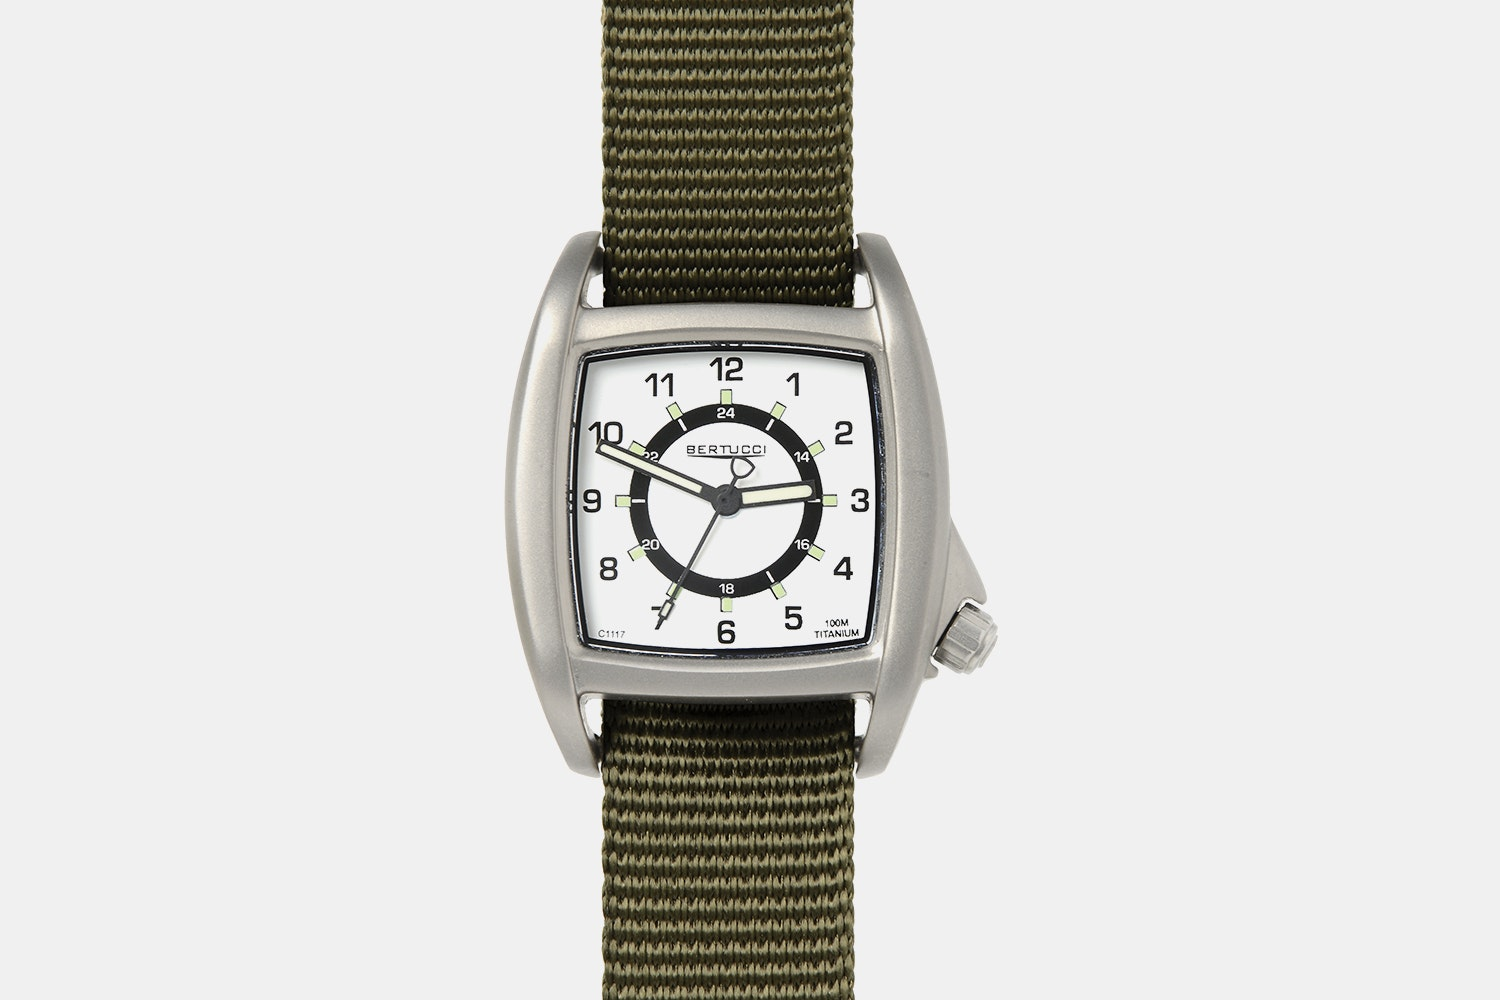 White Dial, Olive Band (- $25)